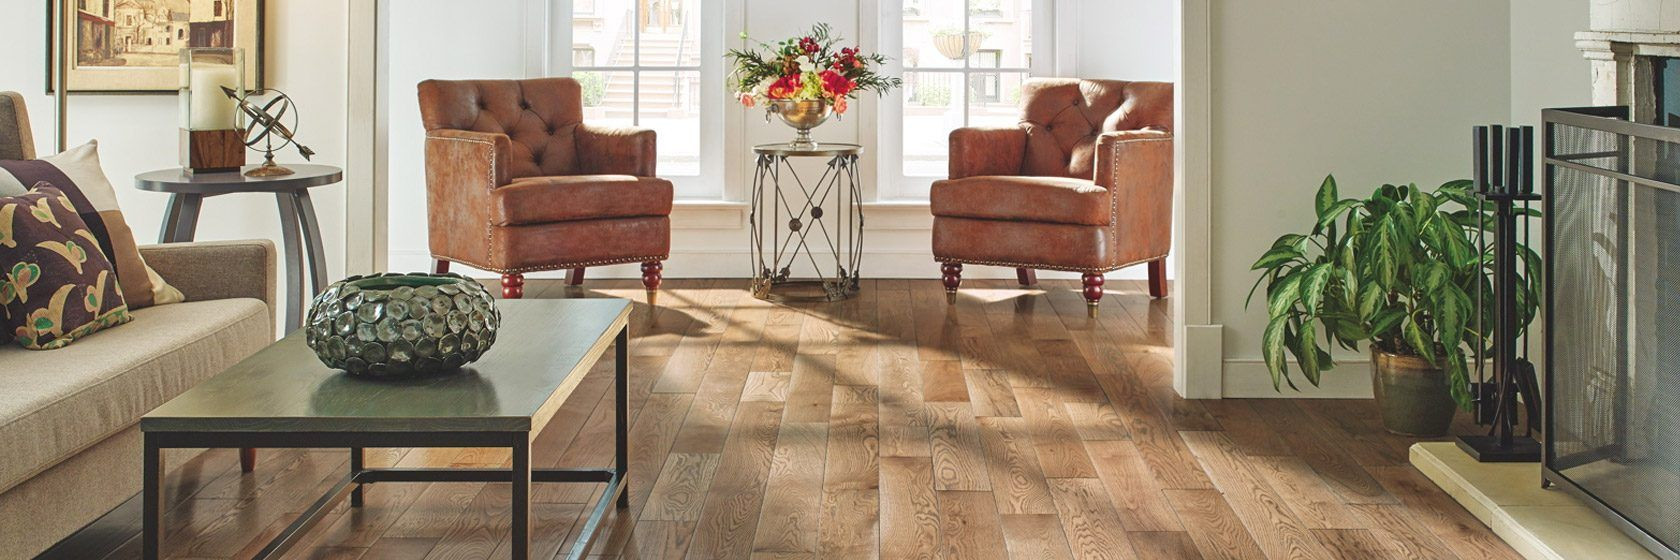 oak or maple hardwood floors which is better of oak solid hardwood hay ground saktb39l4hgw is part of the within oak solid hardwood hay ground saktb39l4hgw is part of the timberbrushed collection from hardwood view specs order a sample